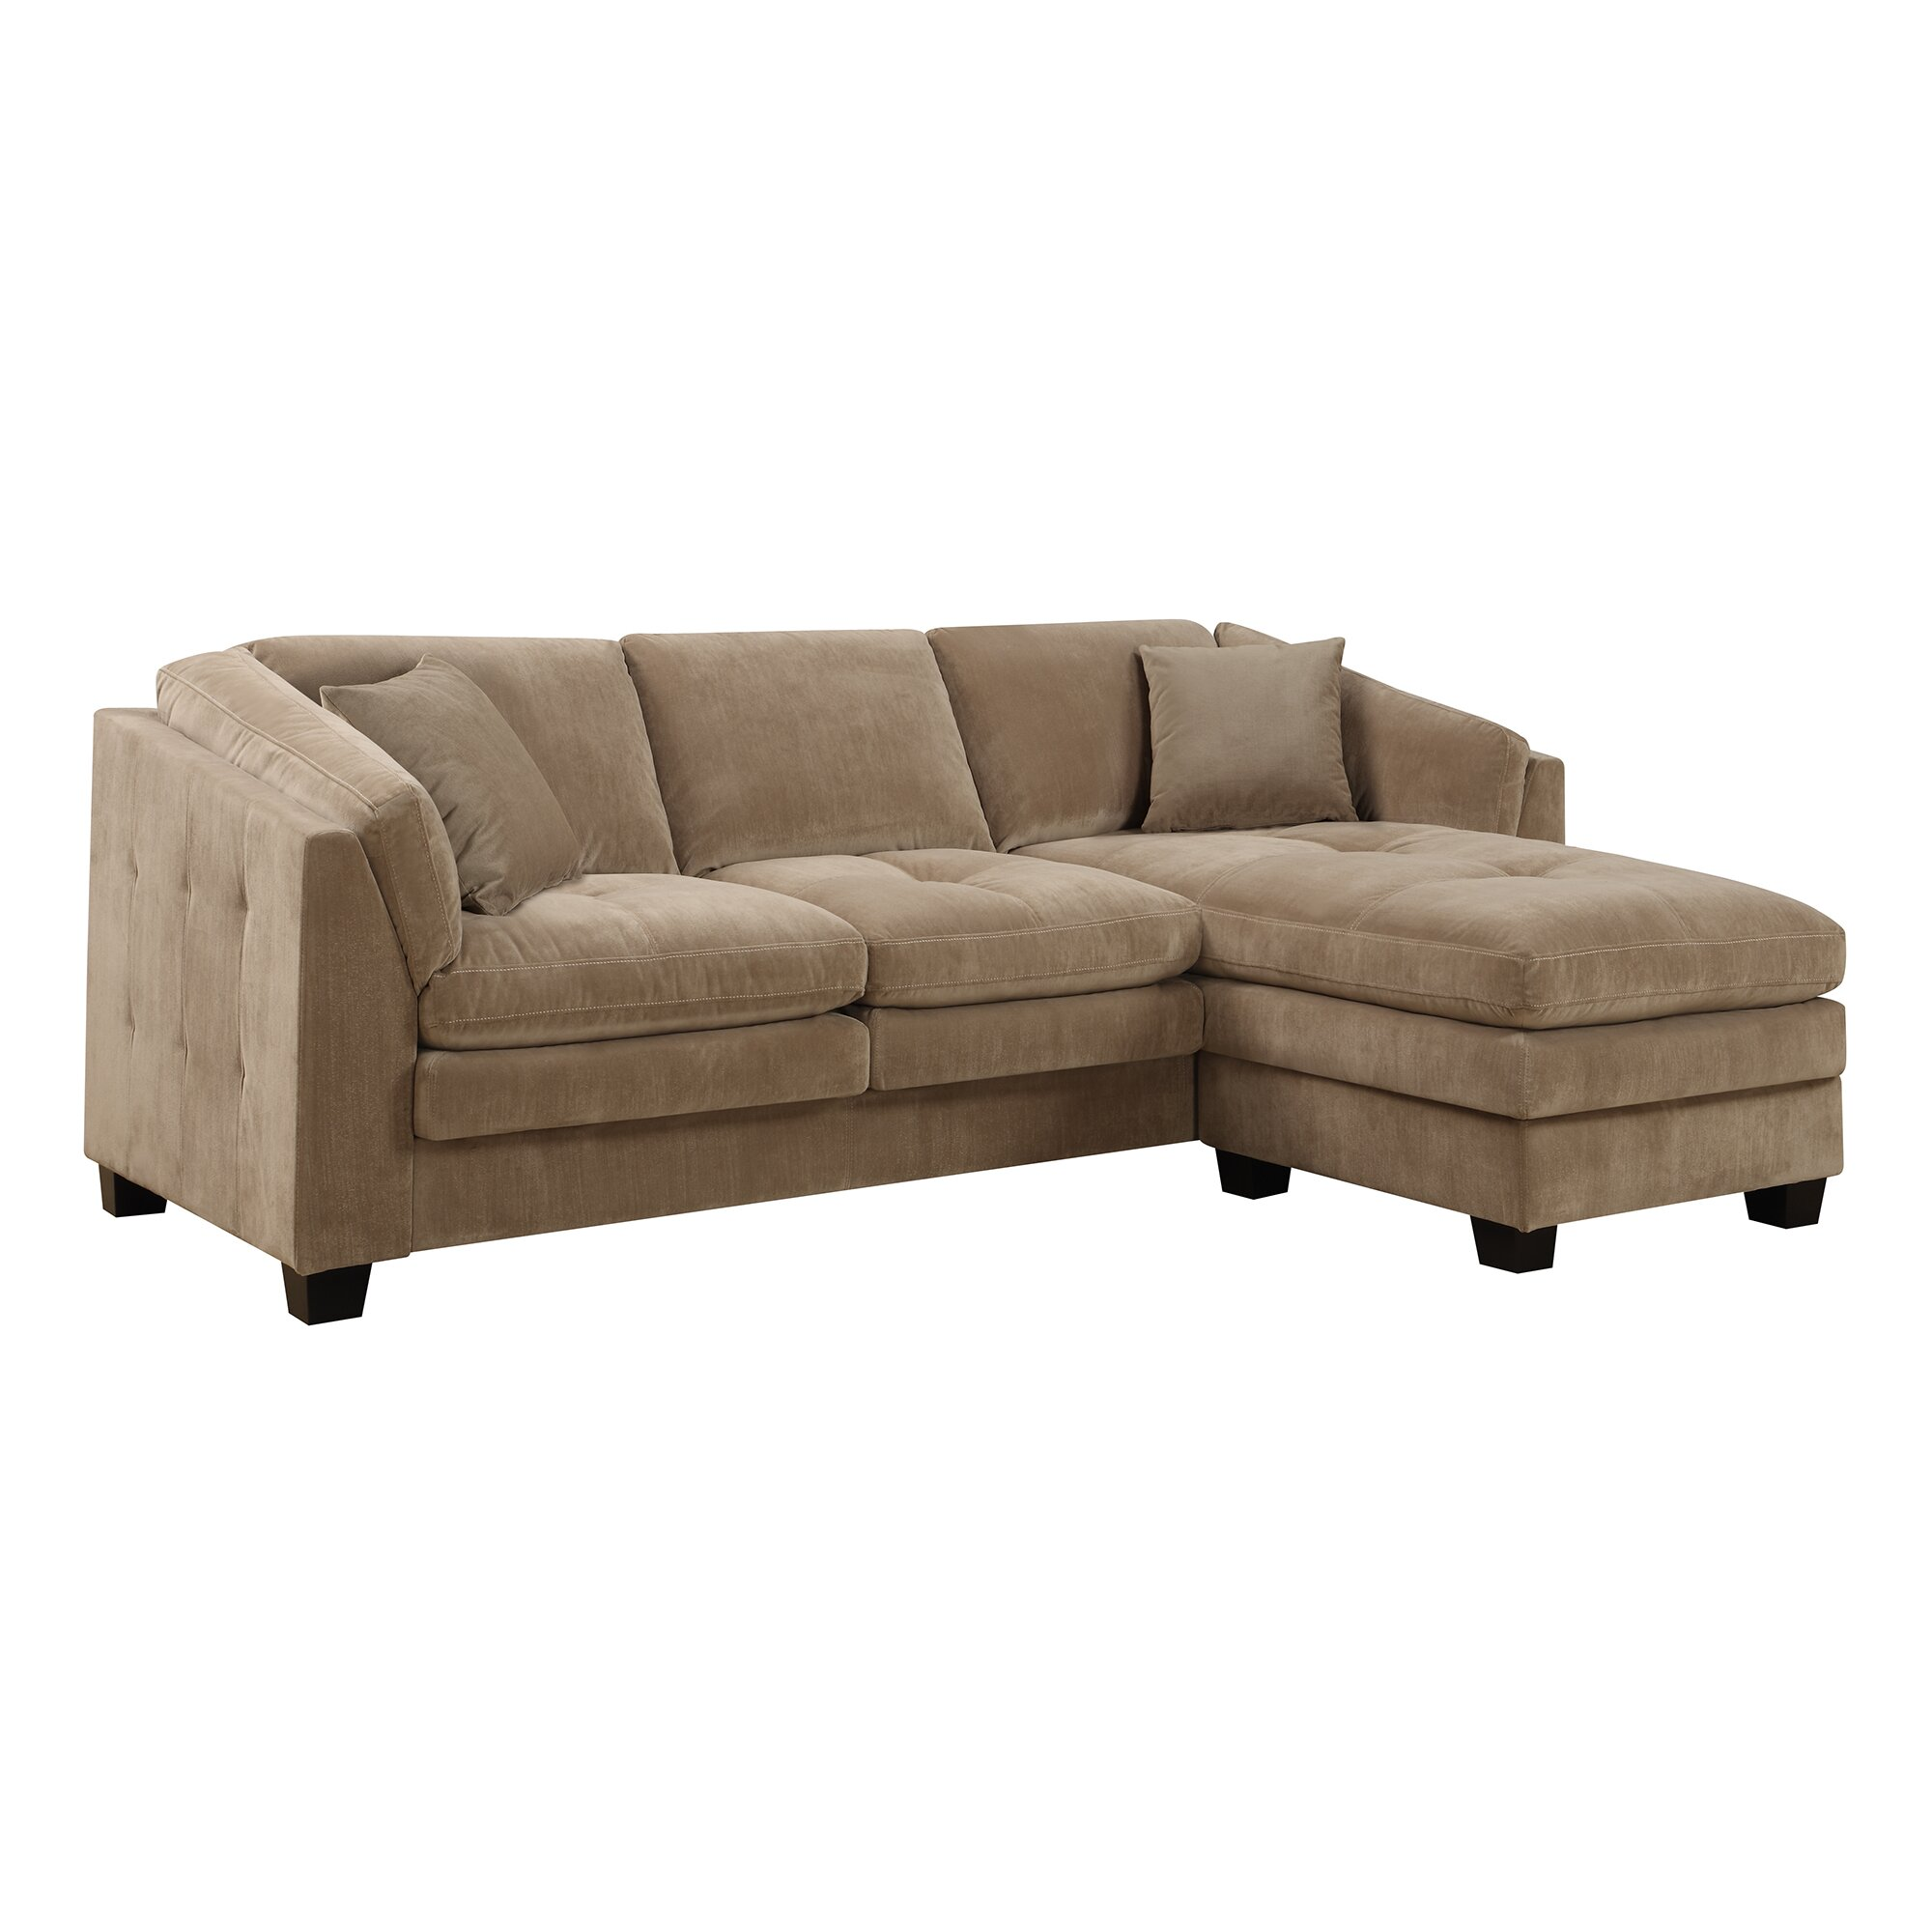 Darby home co modular sectional reviews wayfair for Wayfair sectionals